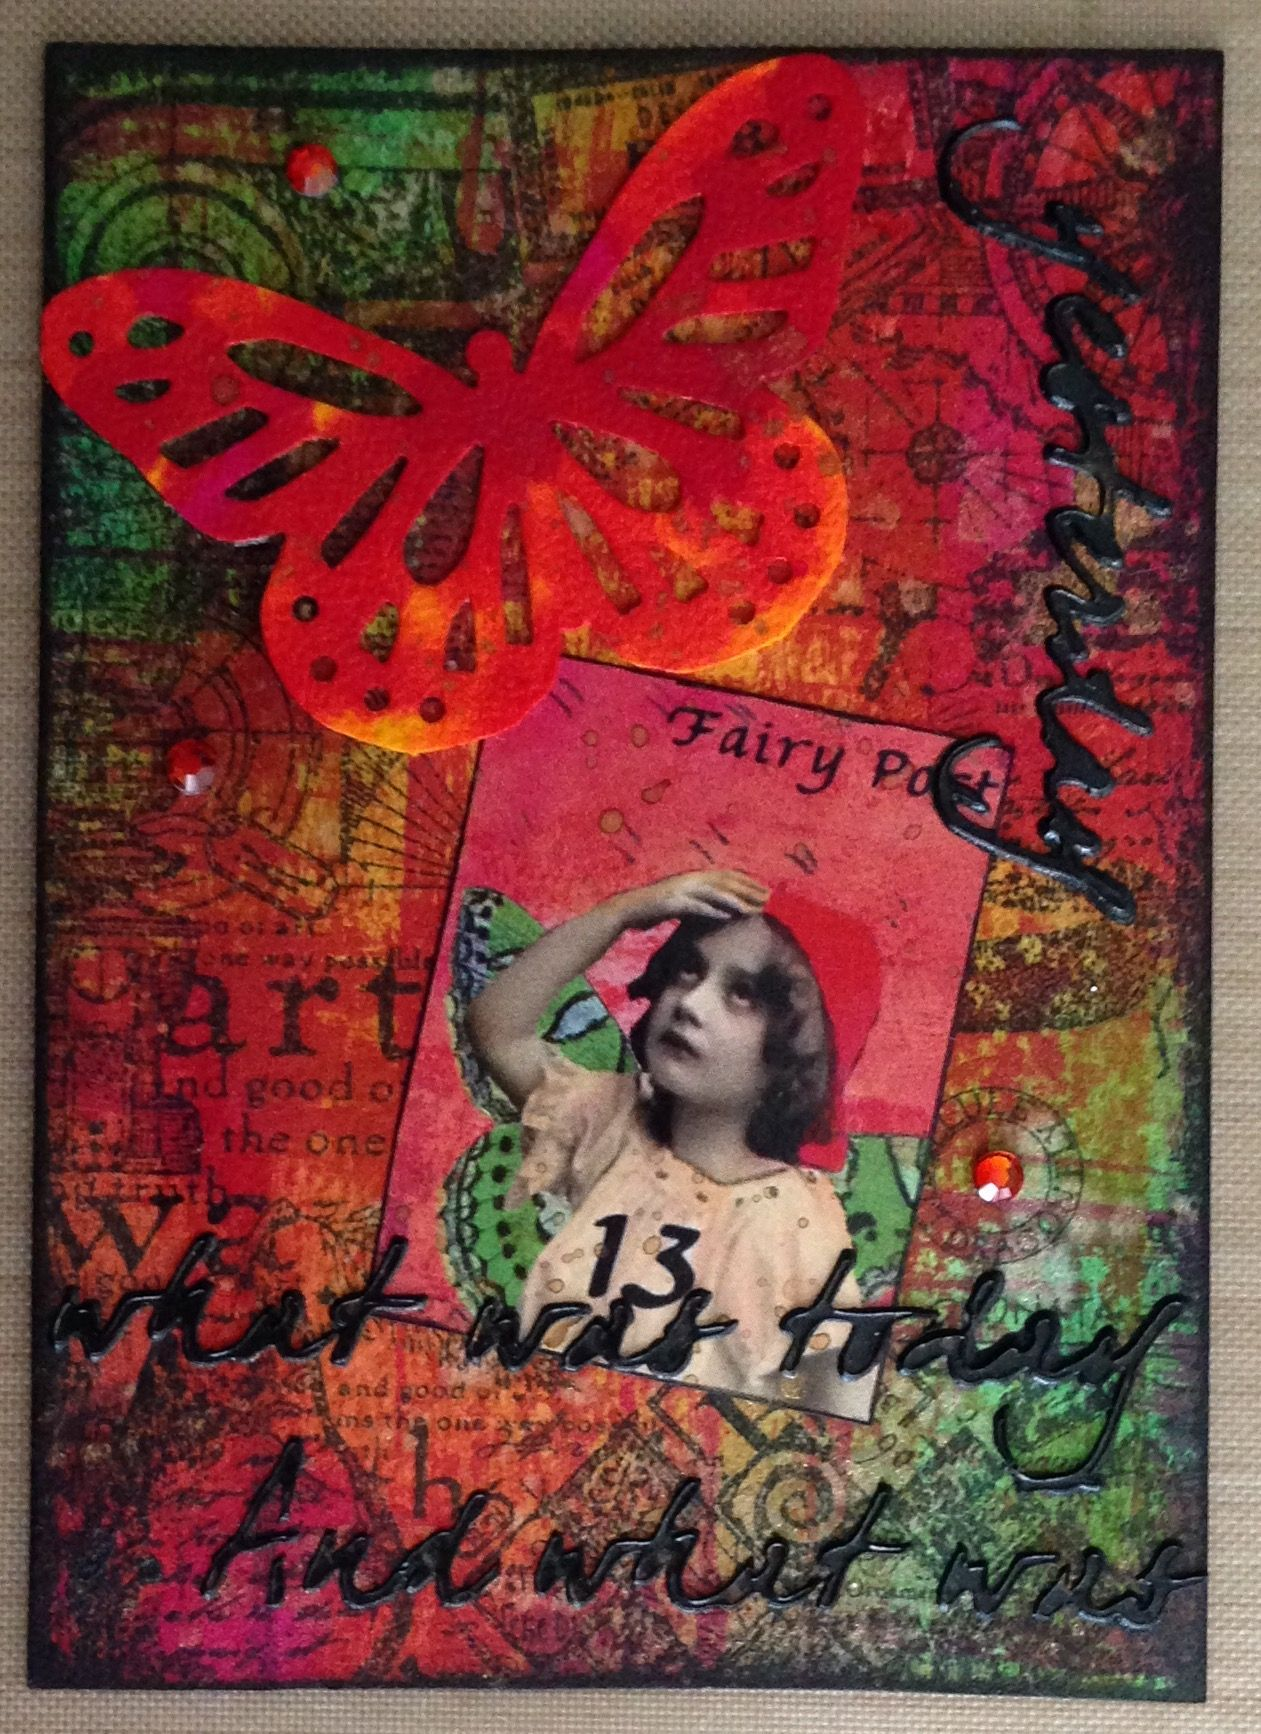 Atc Atc Stands For Artist Trading Card 3 1 2 Inches By 2 1 2 Inches Atc Cards Artist Trading Cards Card Tags